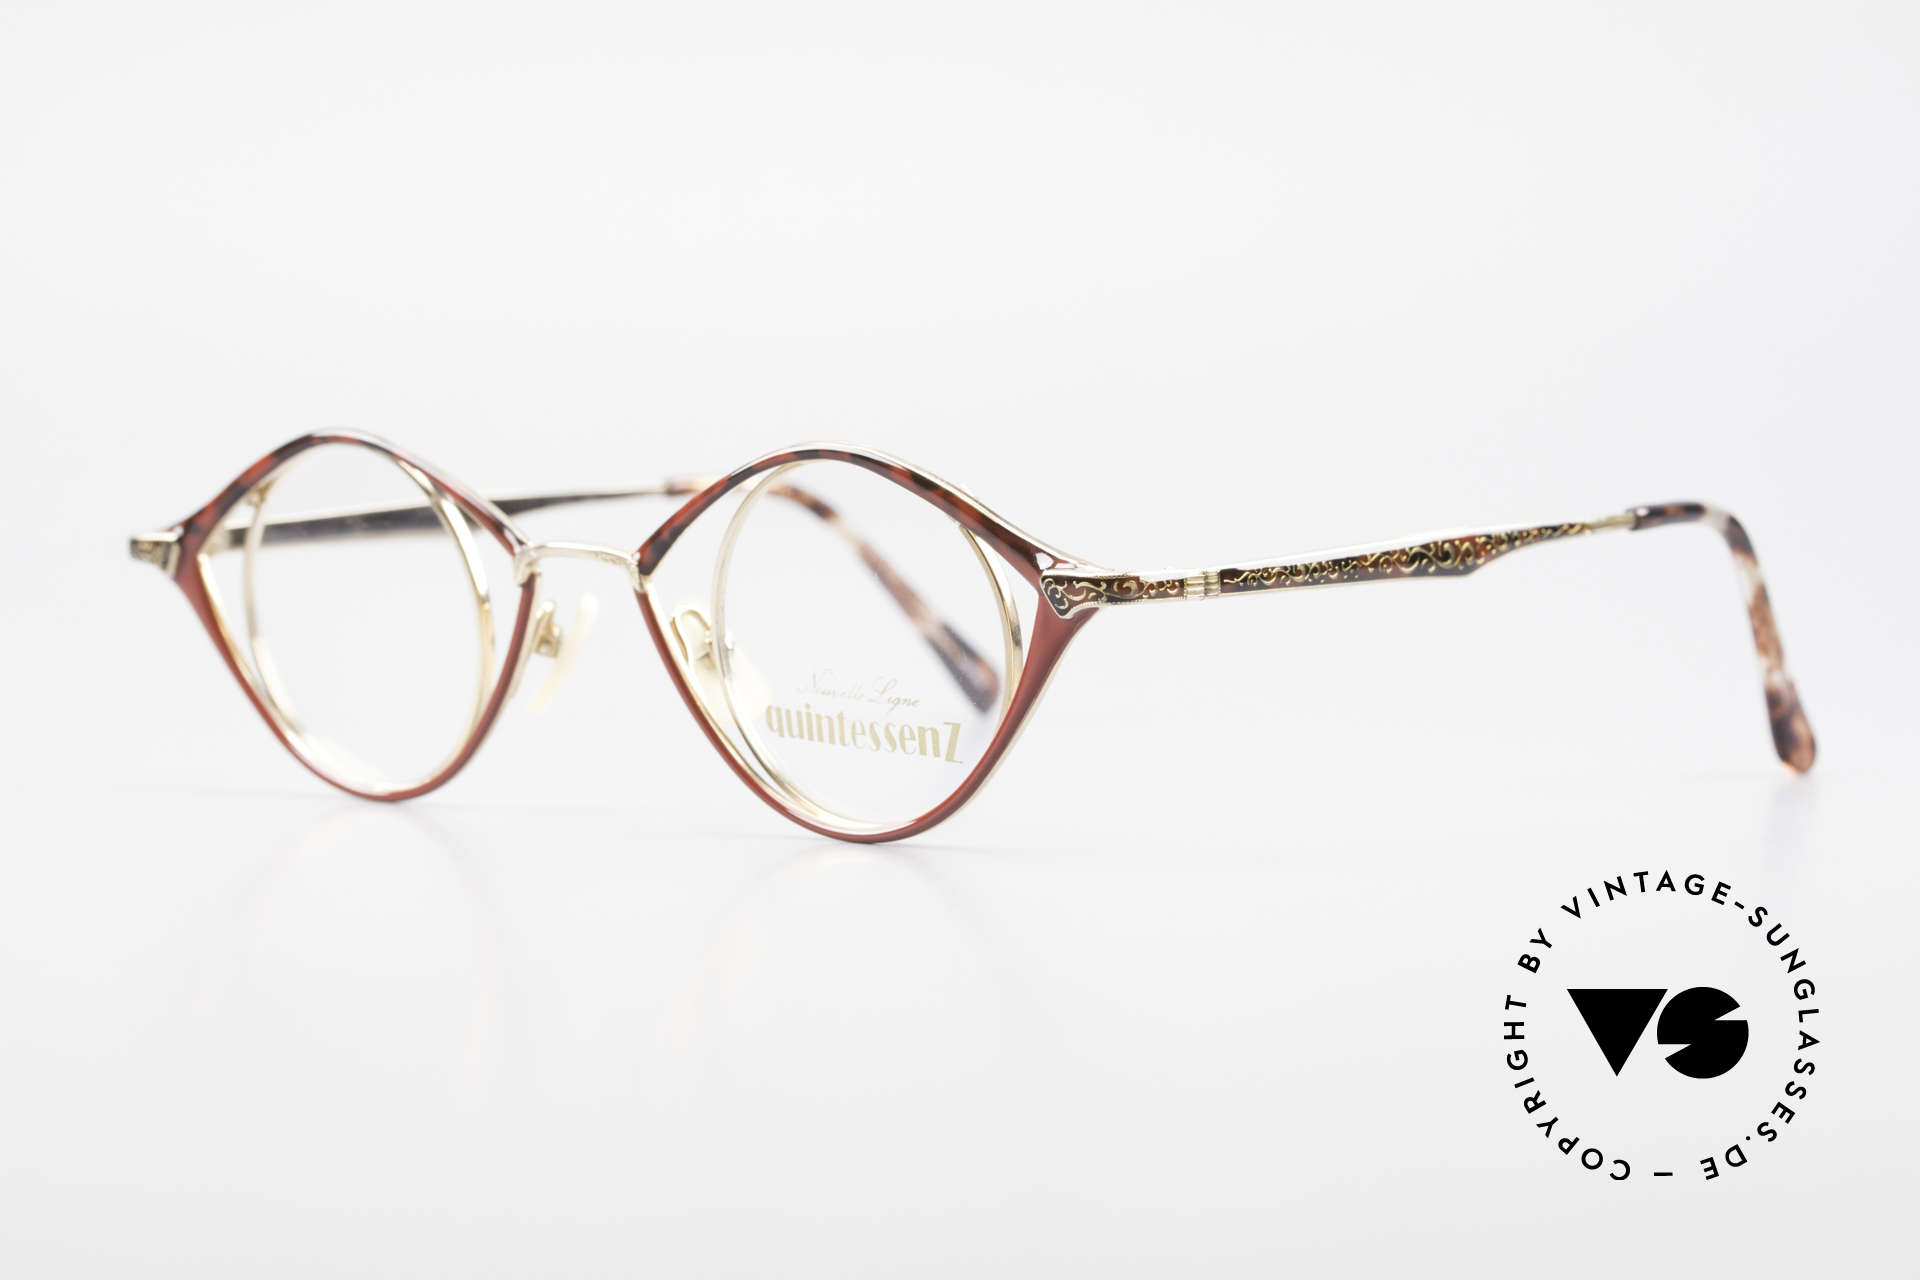 Nouvelle Ligne Q40 Vintage Ladies Specs No Retro, terrific ladies model of the Quintessenz Series, Made for Women